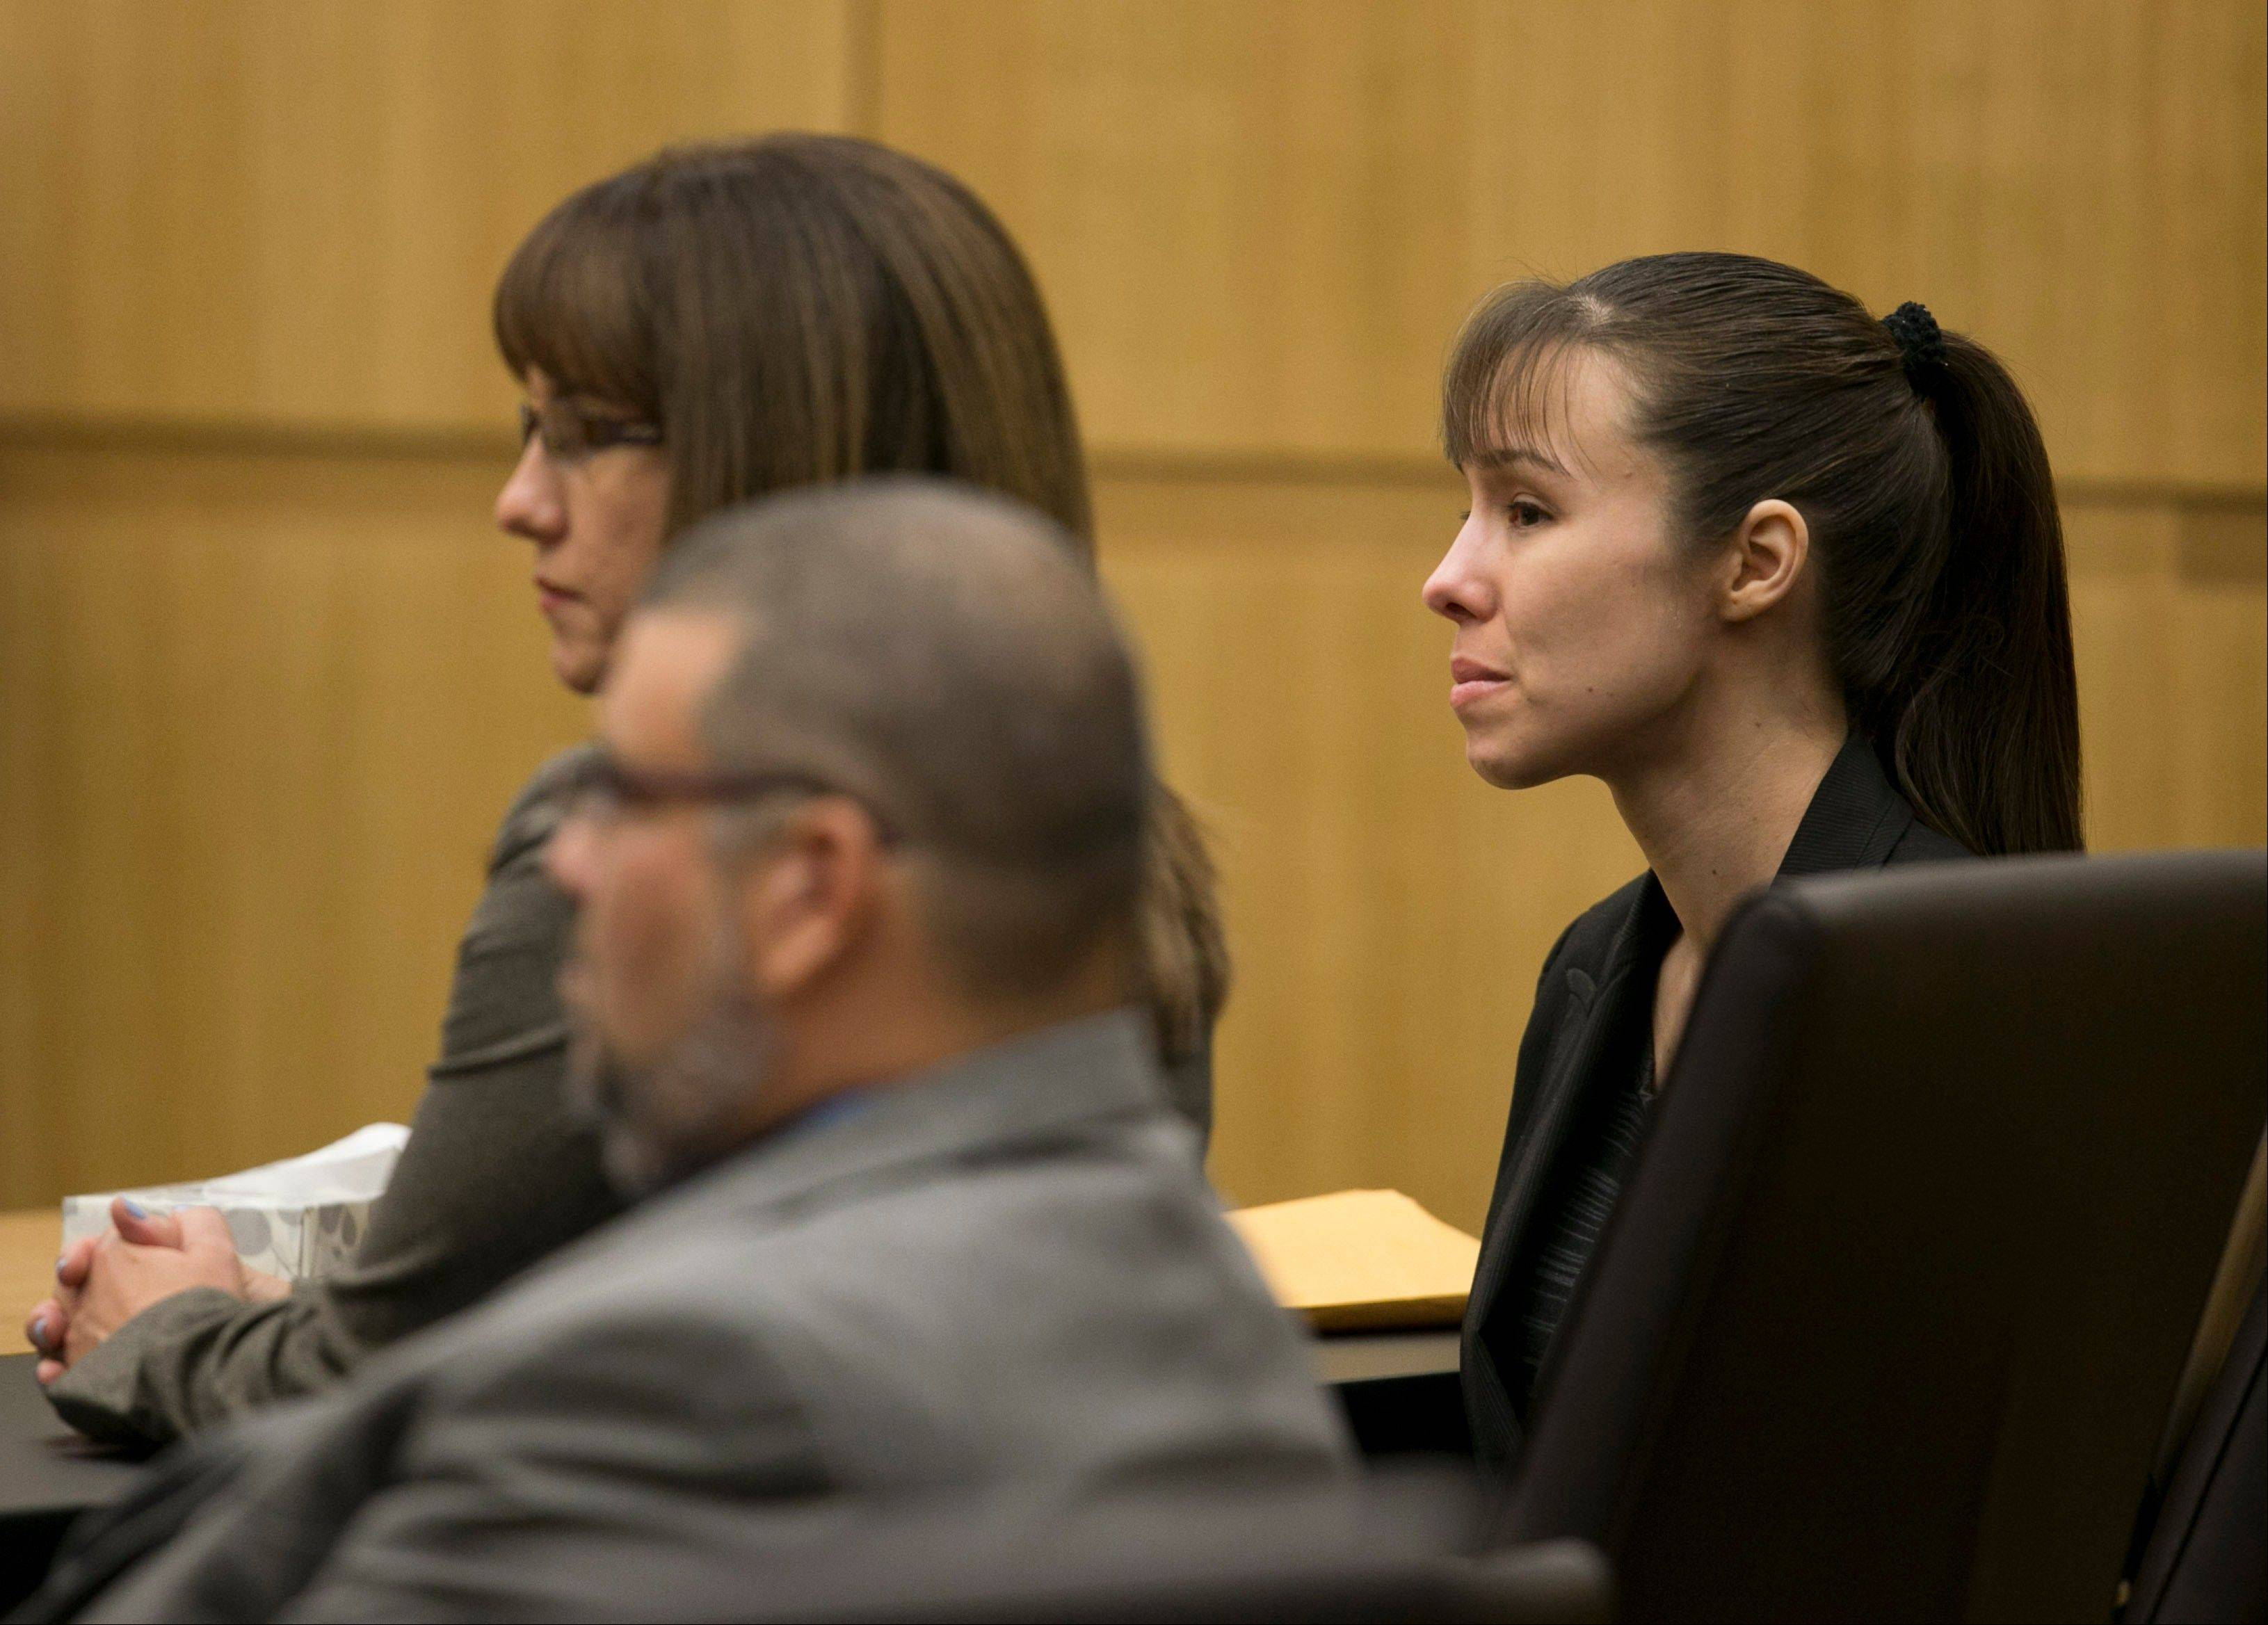 Jodi Arias listens Thursday as the verdict for sentencing is read for her first degree murder conviction at Maricopa County Superior Court in Phoenix, Ariz. The jury failed to reach a verdict on the death penalty.